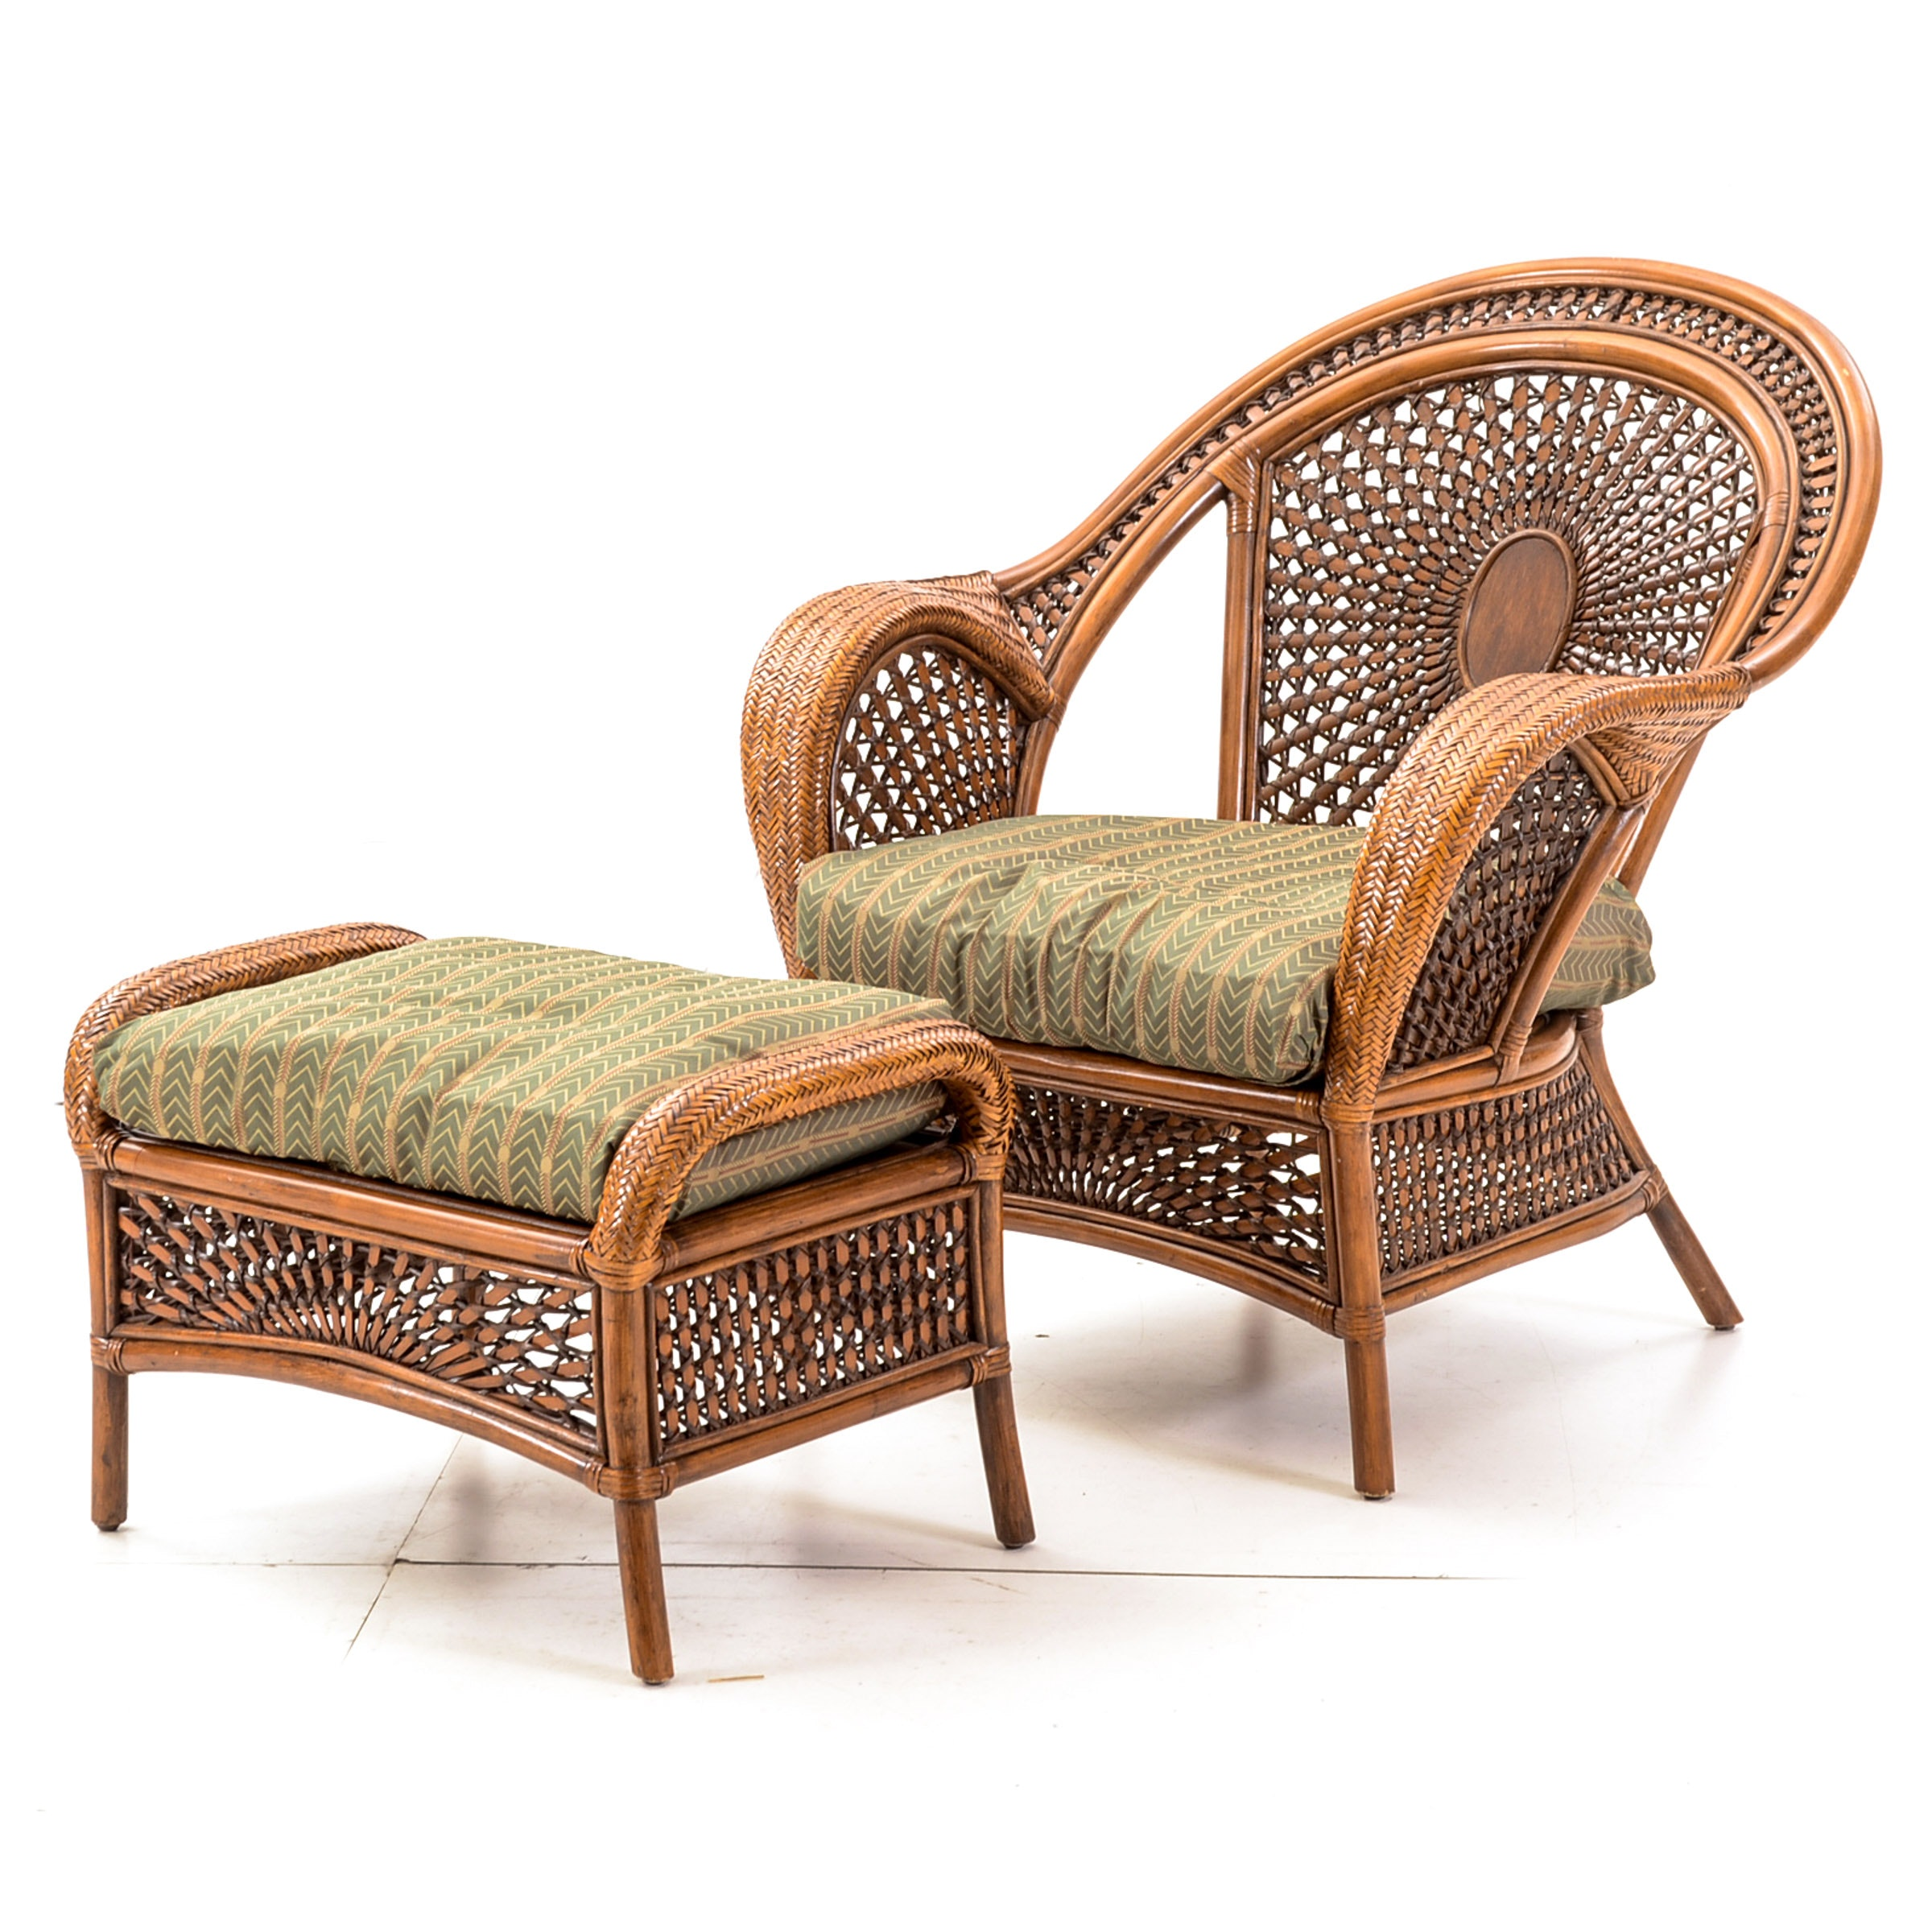 Pier One Wicker Chair With Ottoman ...